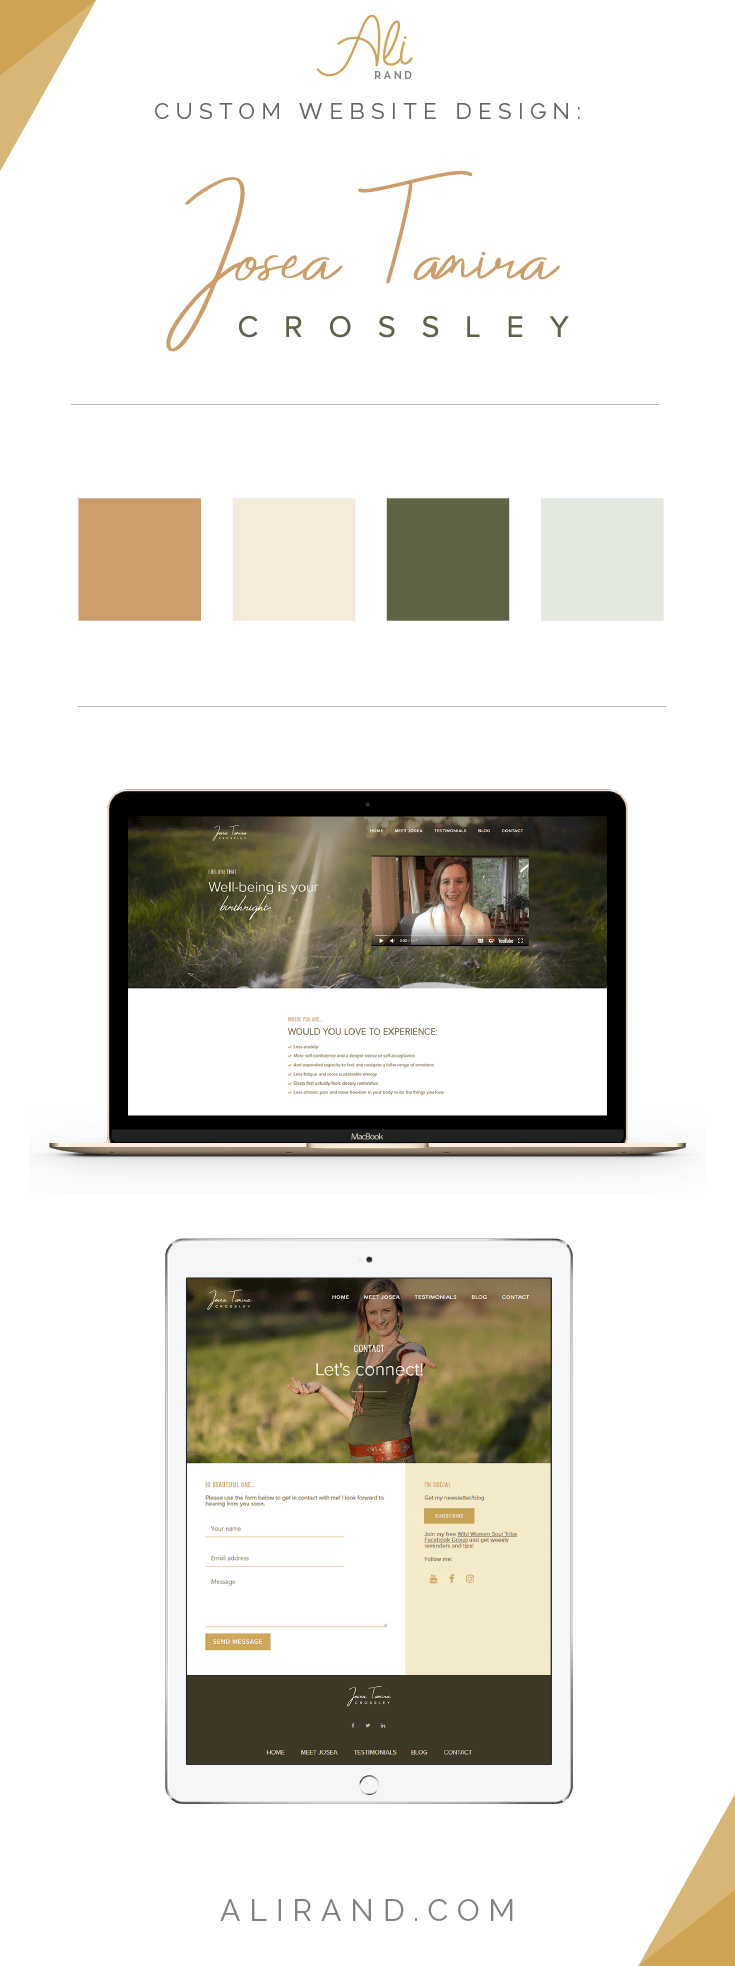 See the portfolio images for Josea Tamira Crossley's custom website design on WordPress by Ali Rand